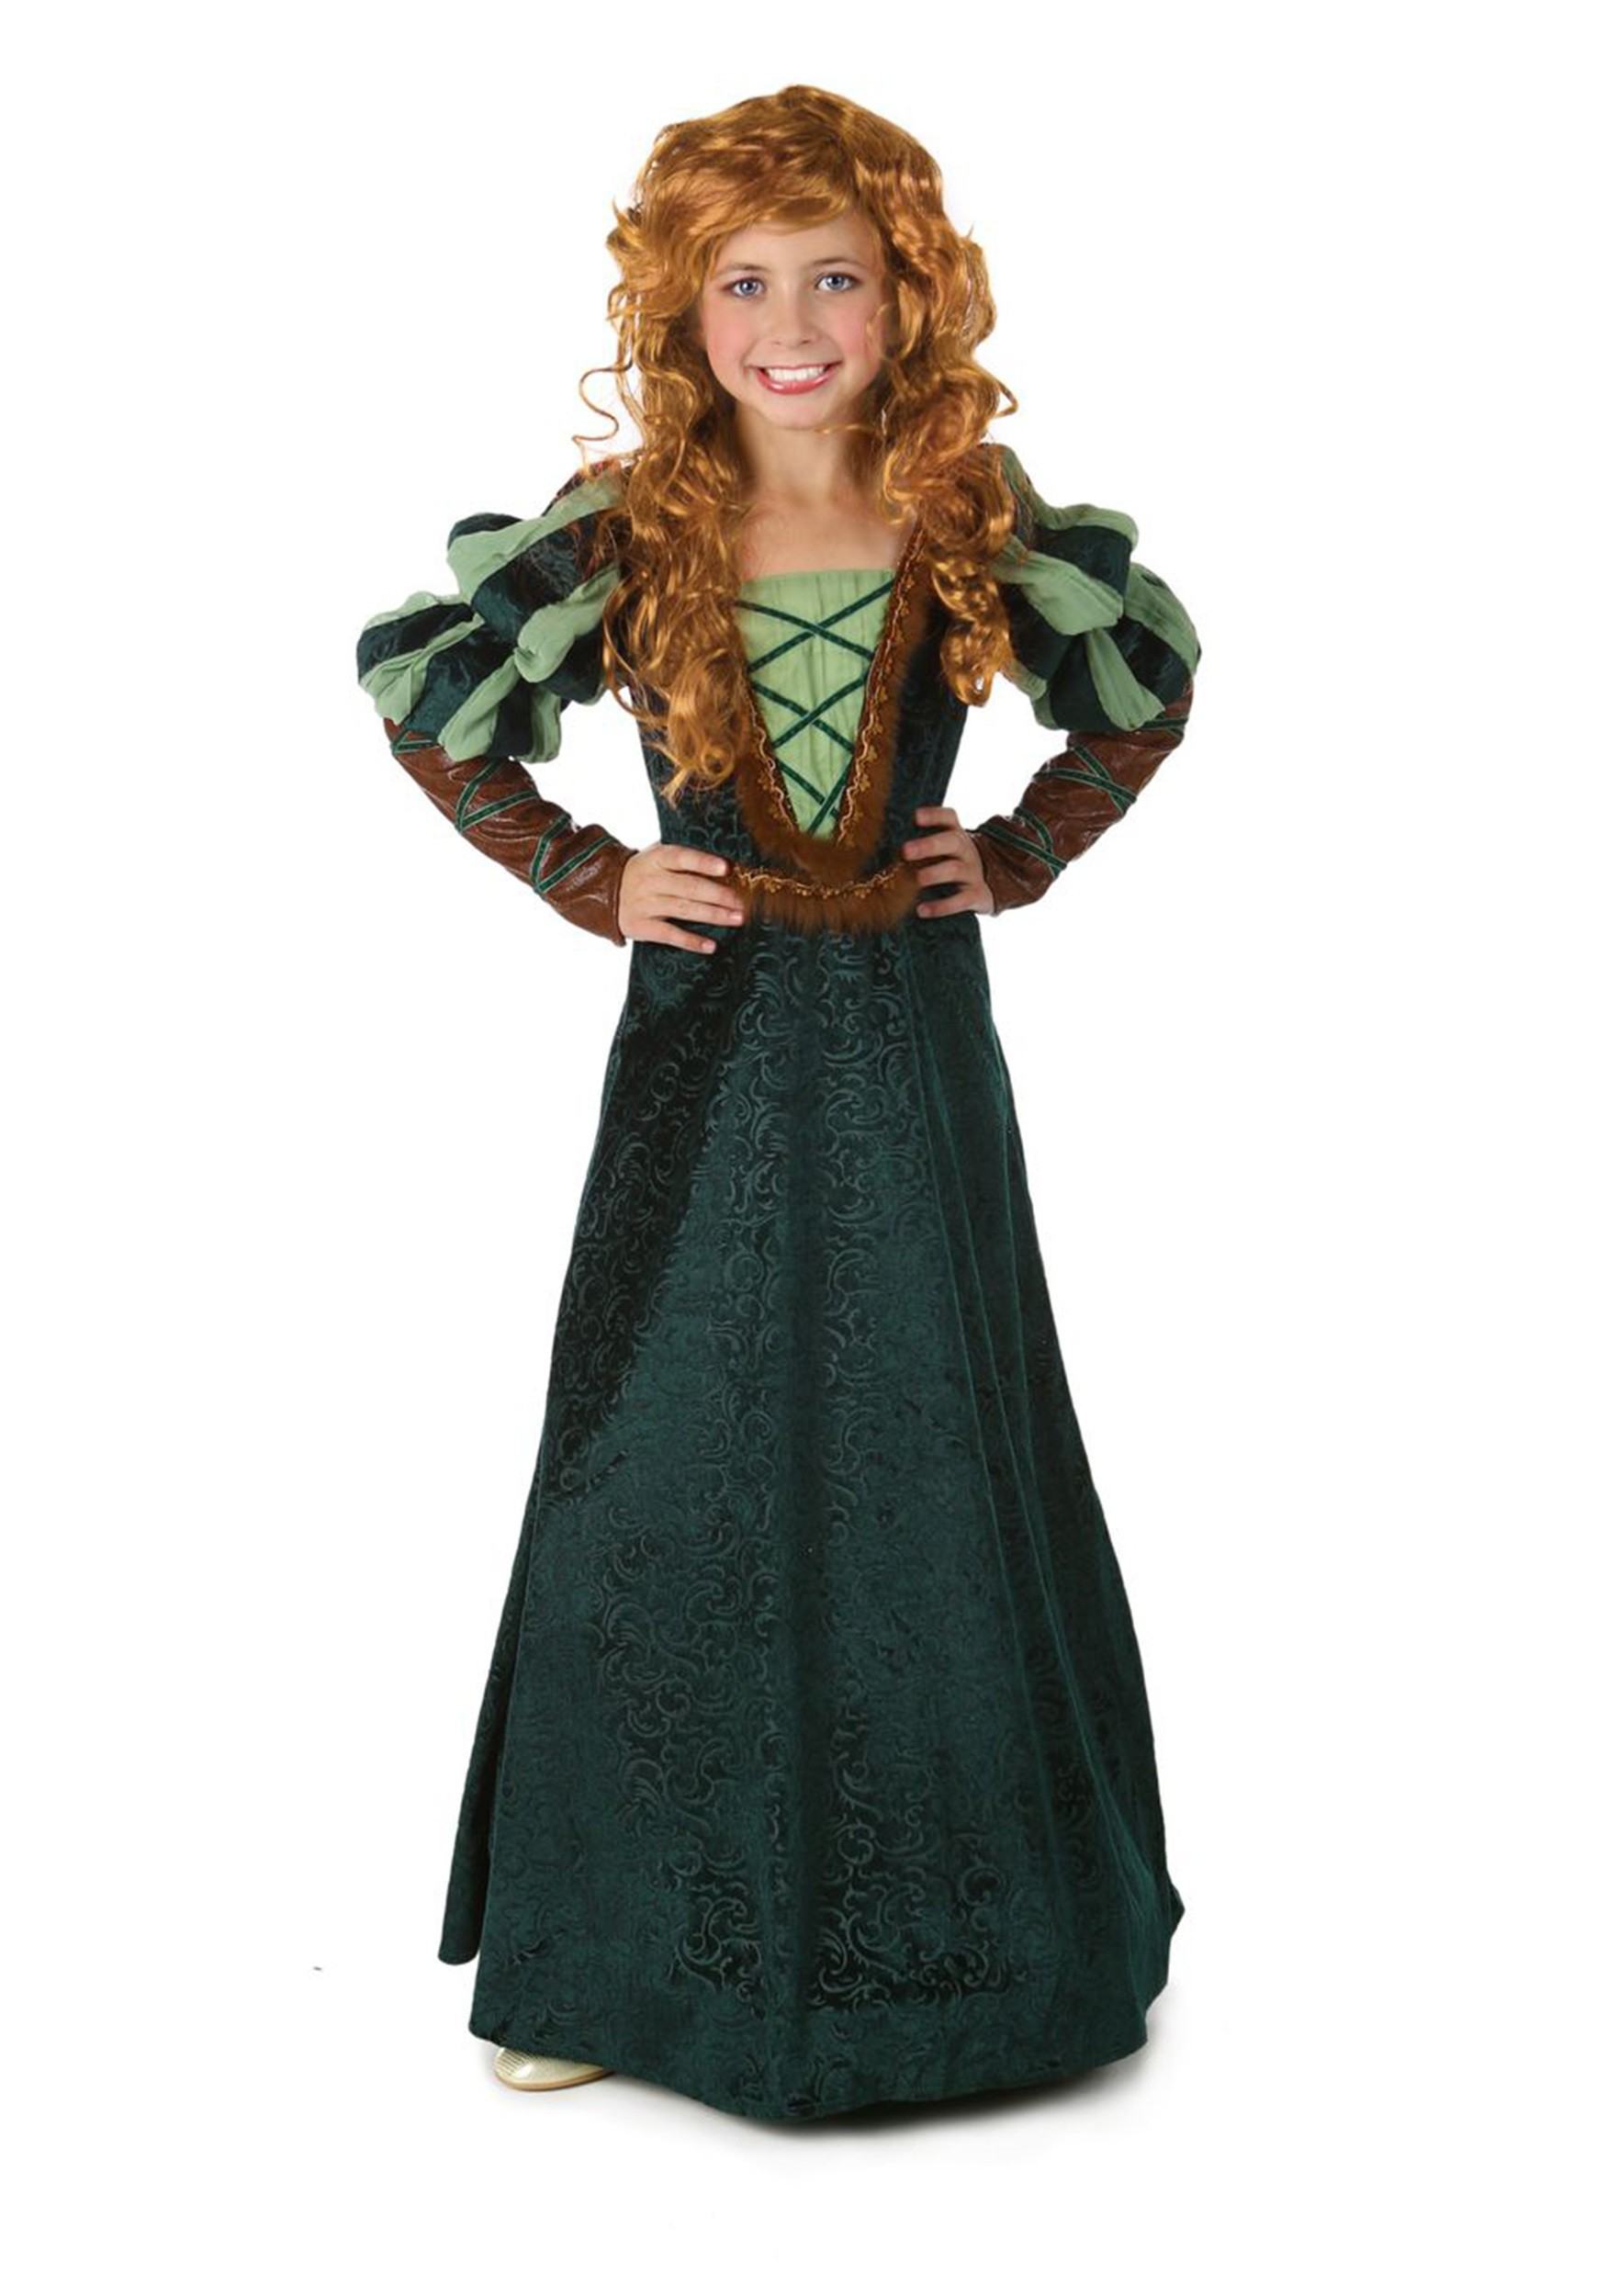 Child Courageous Forest Princess Costume  sc 1 st  Halloween Costumes & Child Courageous Forest Princess Costume - Halloween Costumes